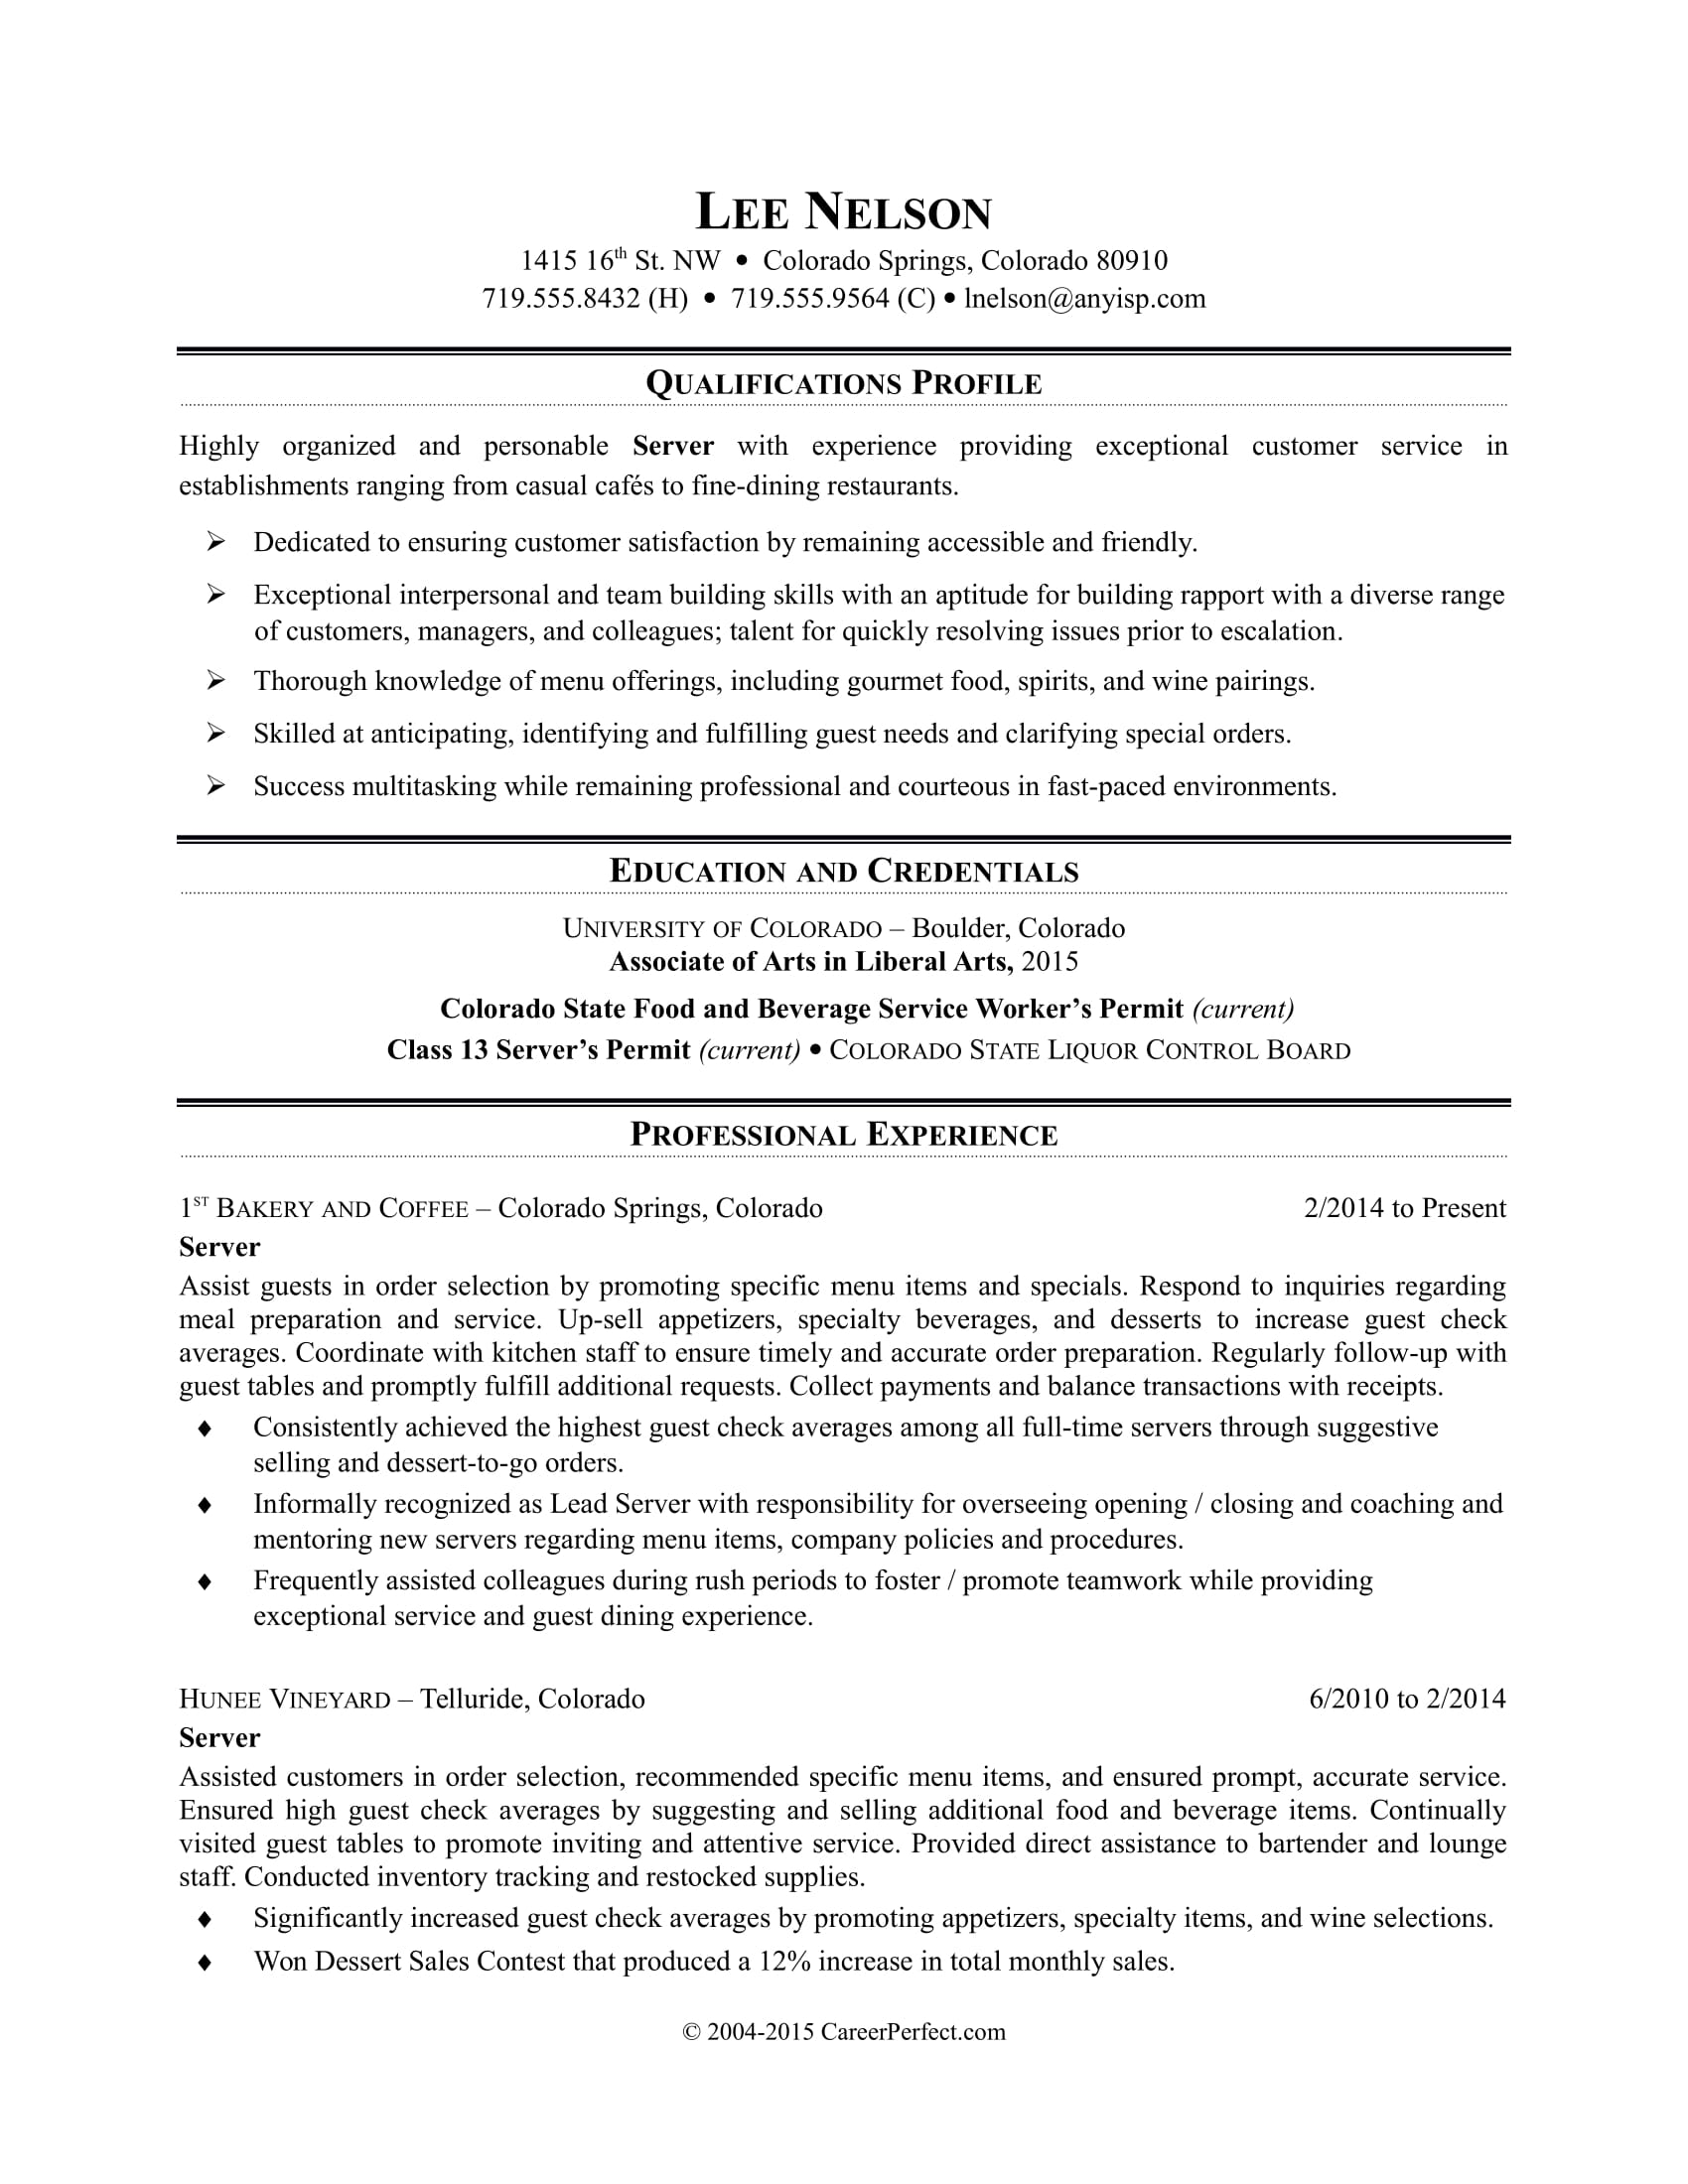 sample resume for a restaurant server - Food Server Resume Objective